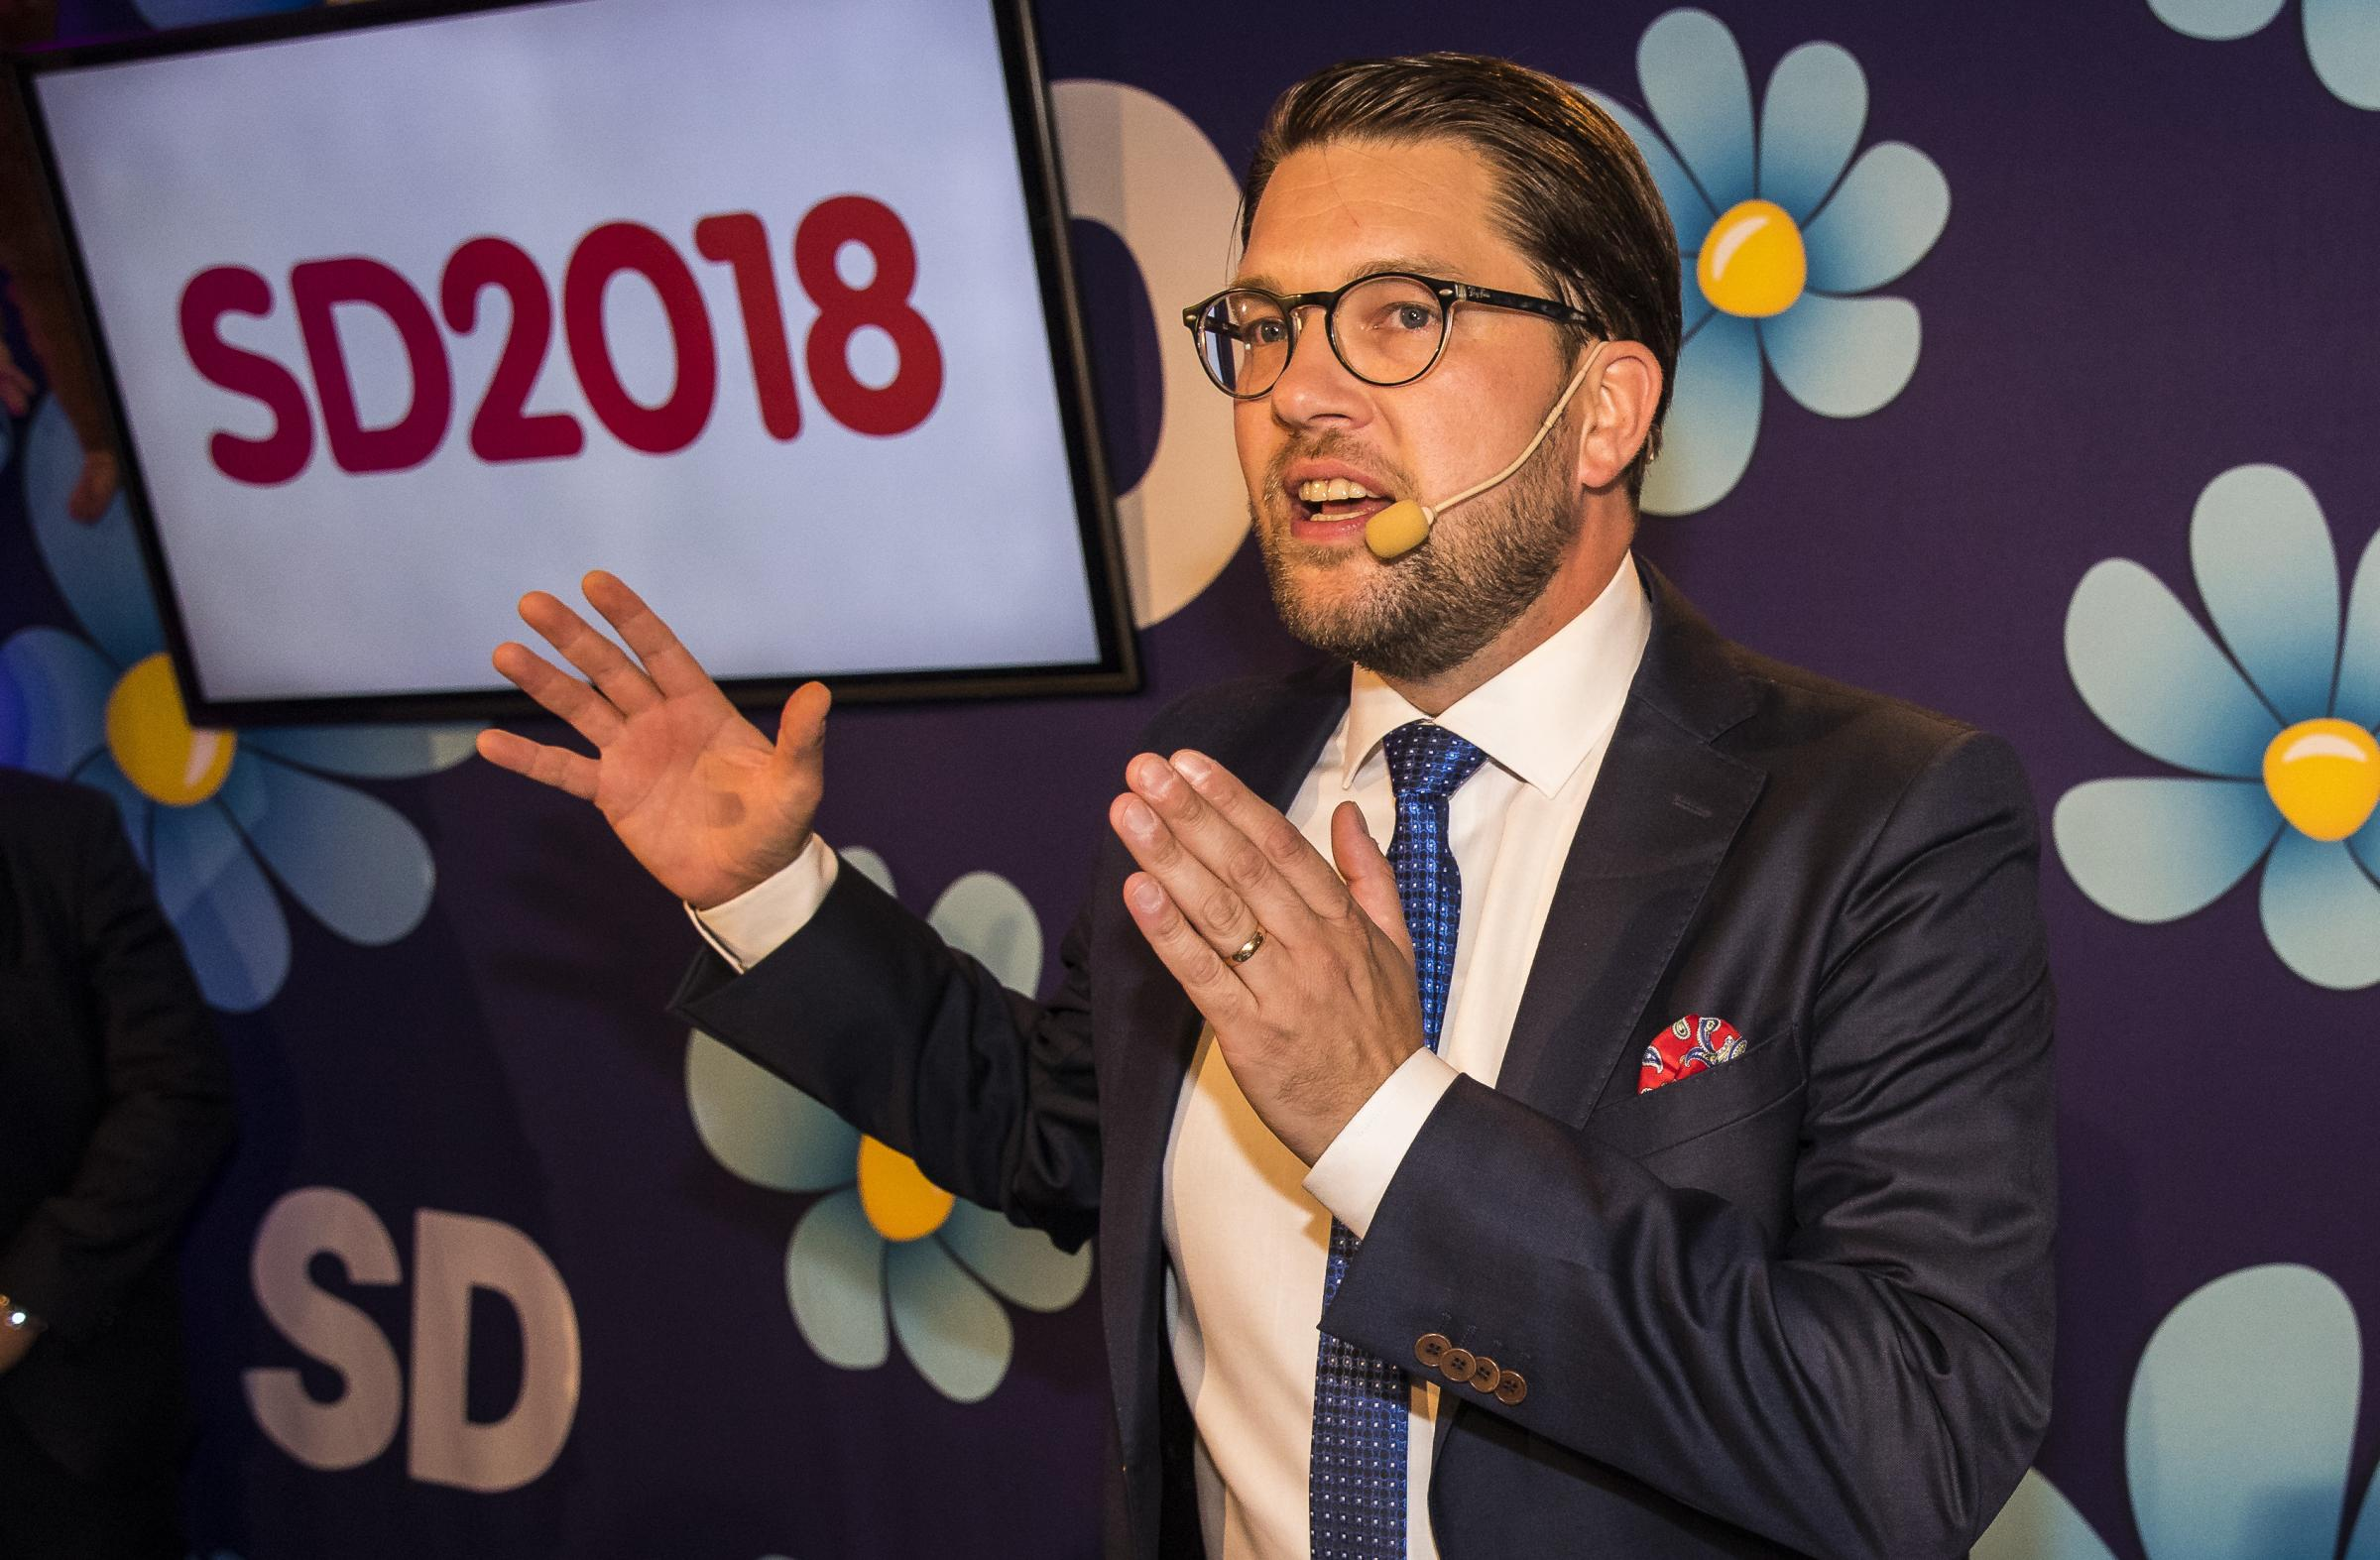 Jimmy Akesson, leader of the far-right Sweden Democrats